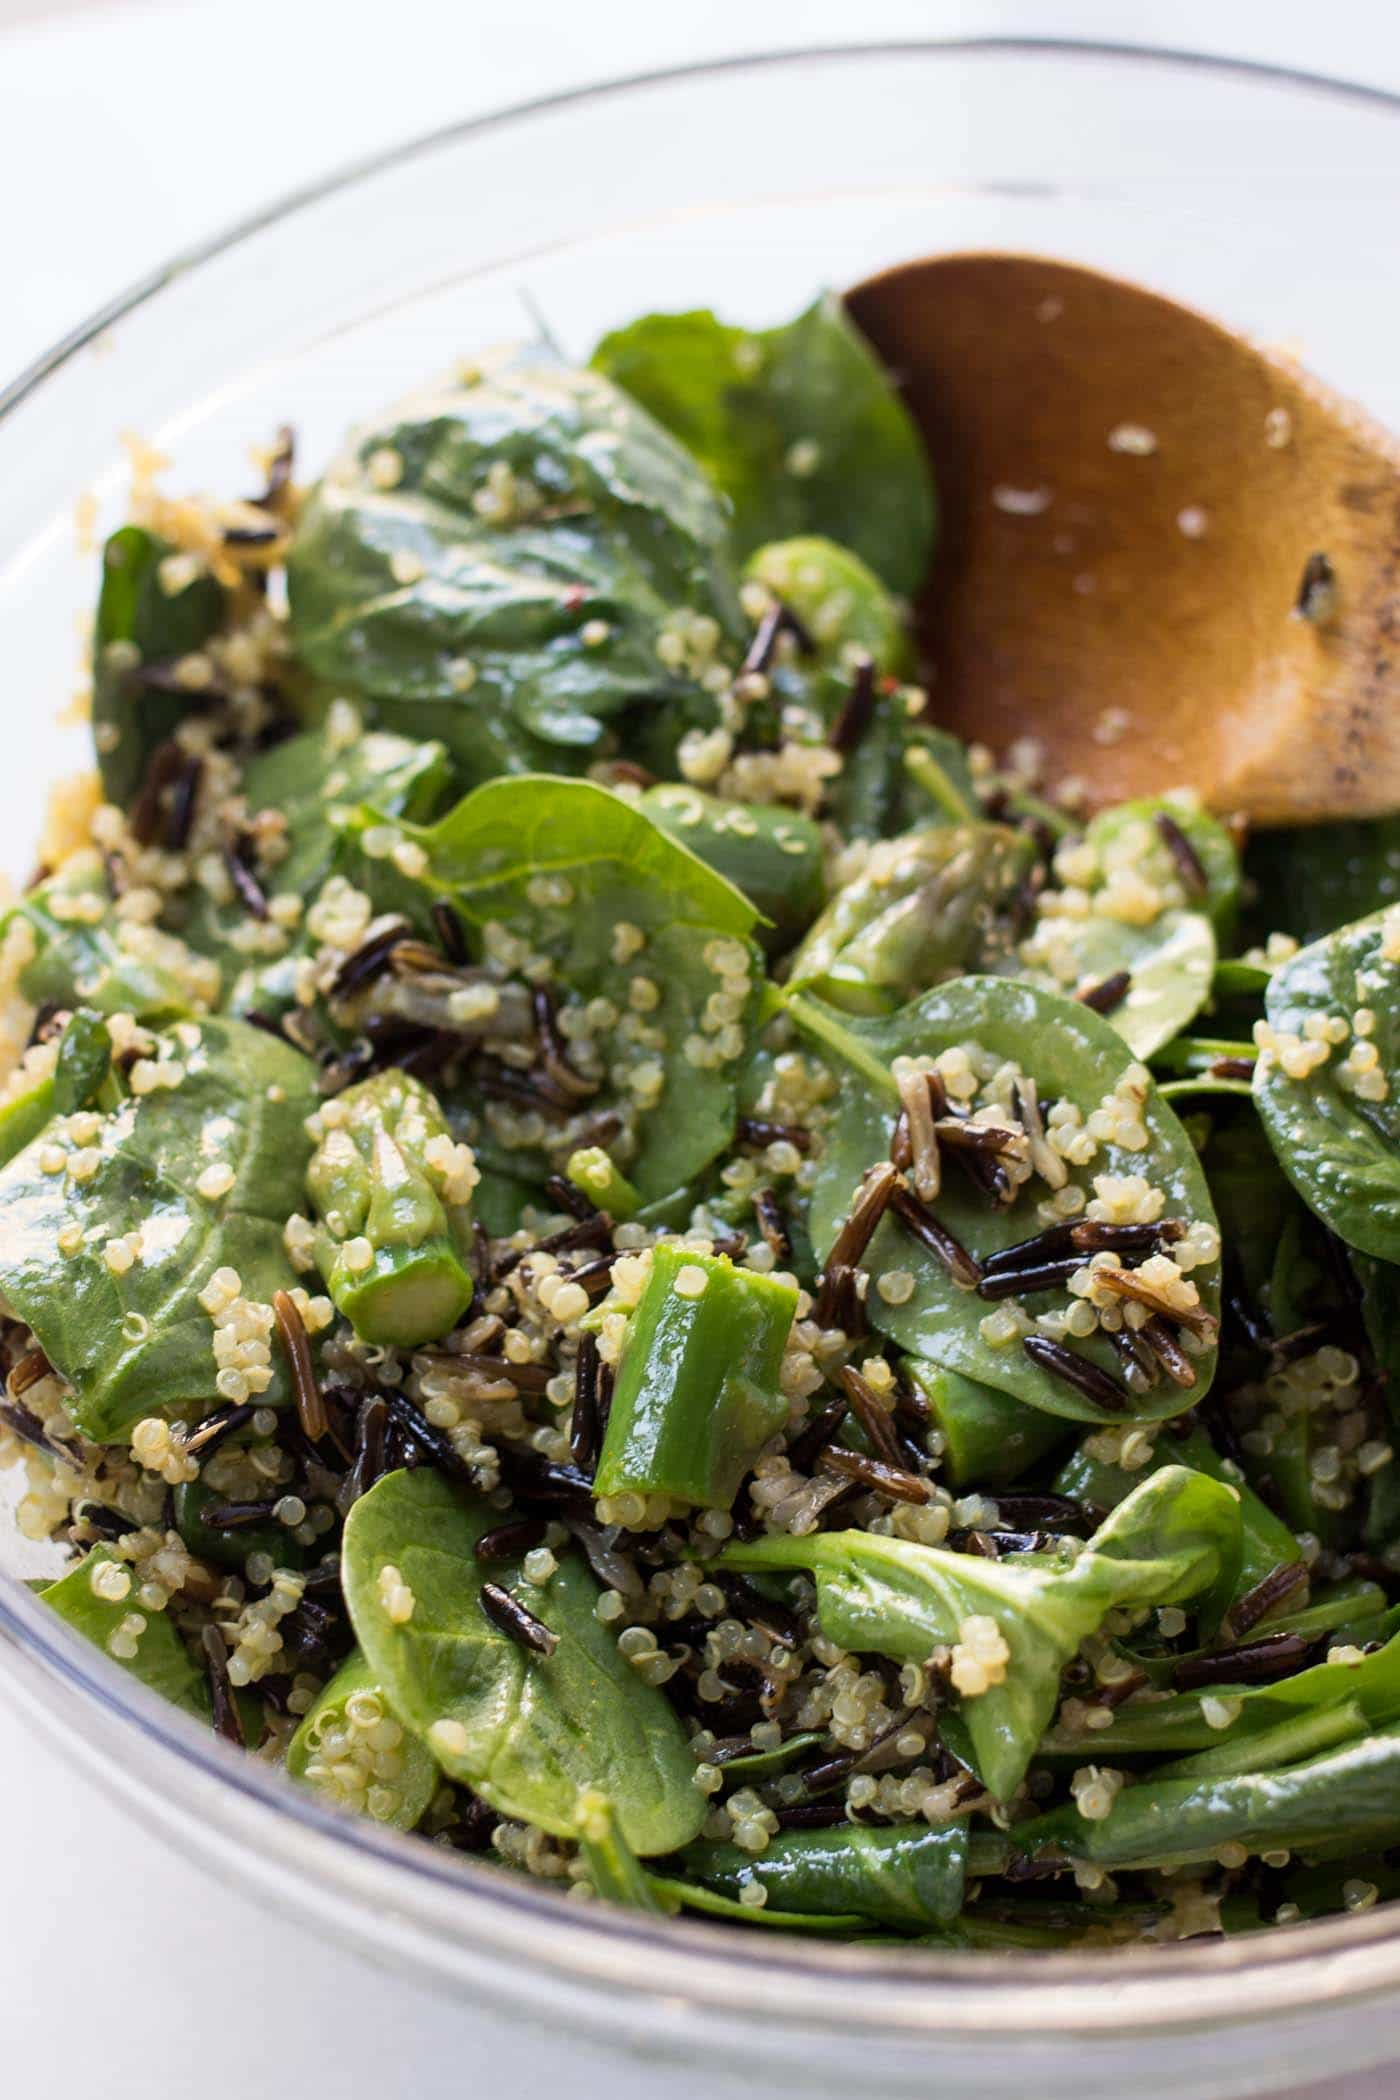 The BEST wild rice quinoa salad you've ever had -- tossed in an anti-inflammatory vinaigrette with lemon + turmeric